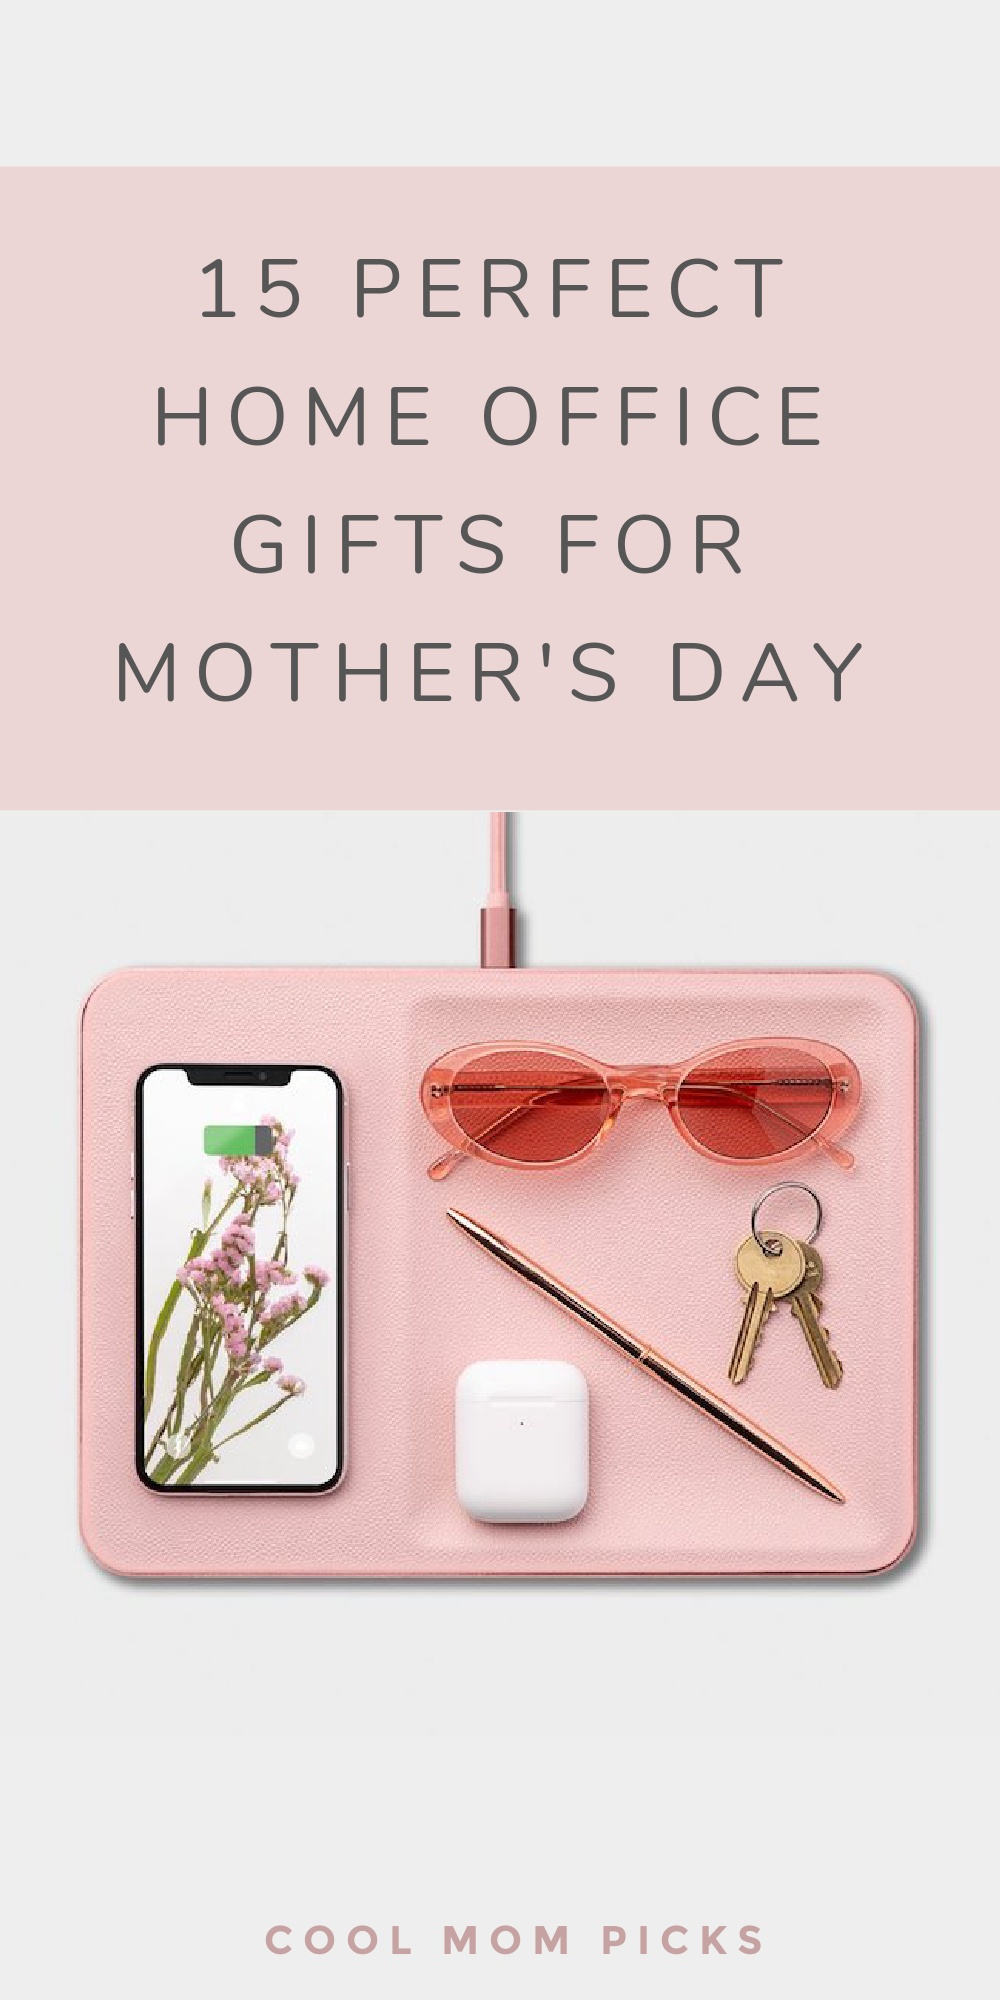 15 Home office gifts for mom